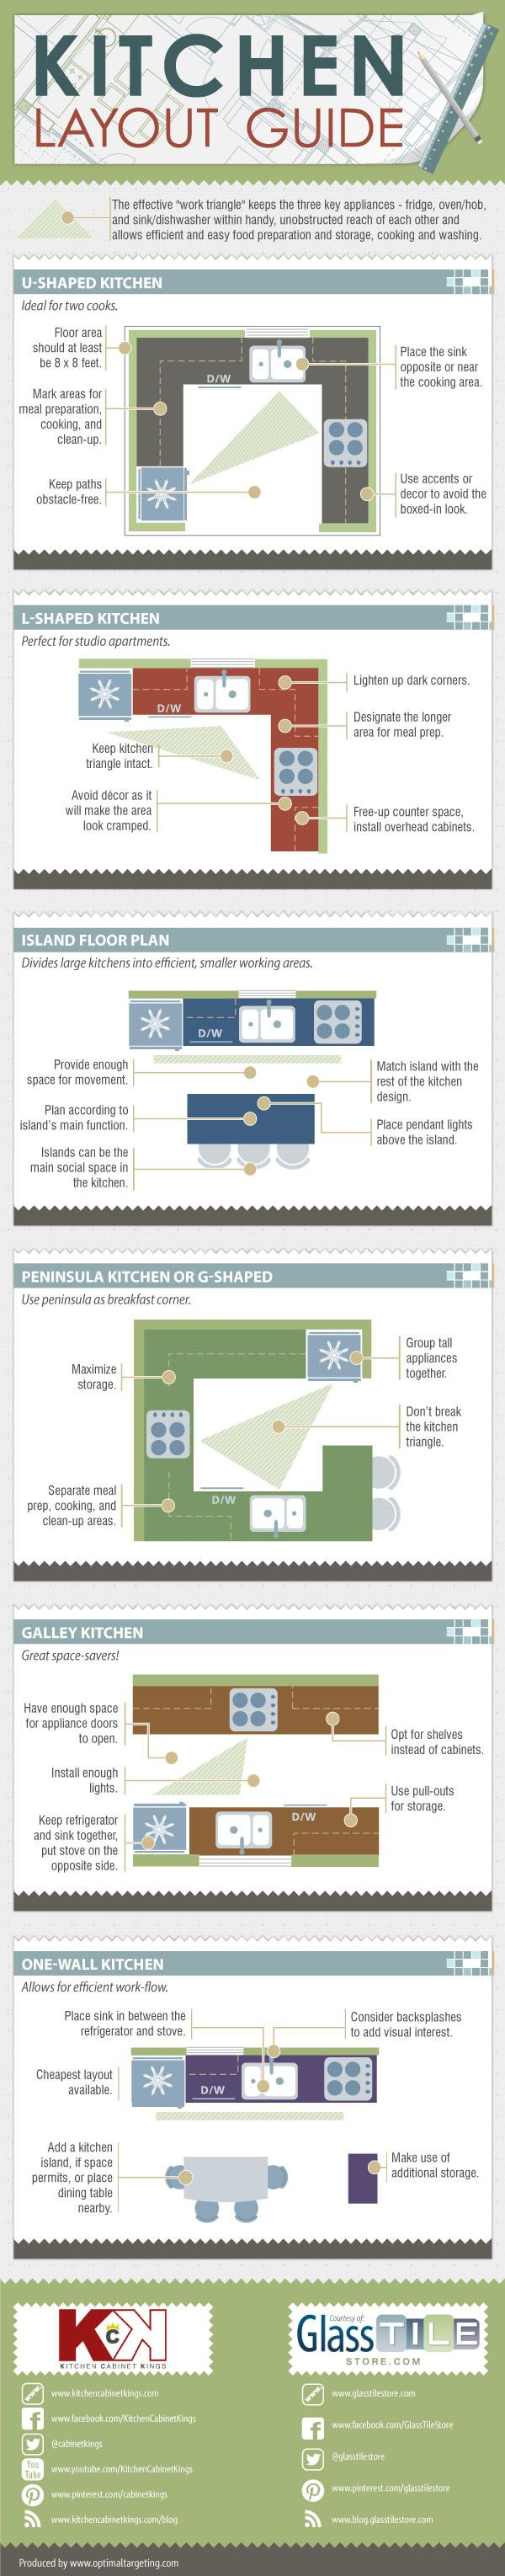 The kitchen layout is the most crucial aspect of your remodel; the ideal floor plan will ensure you are optimizing storage space, creating efficient work areas, and enjoying comfortable seating. - See more at: http://www.kitchencabinetkings.com/kitchen-layout-infographic#sthash.HWG1FU3Q.dpuf